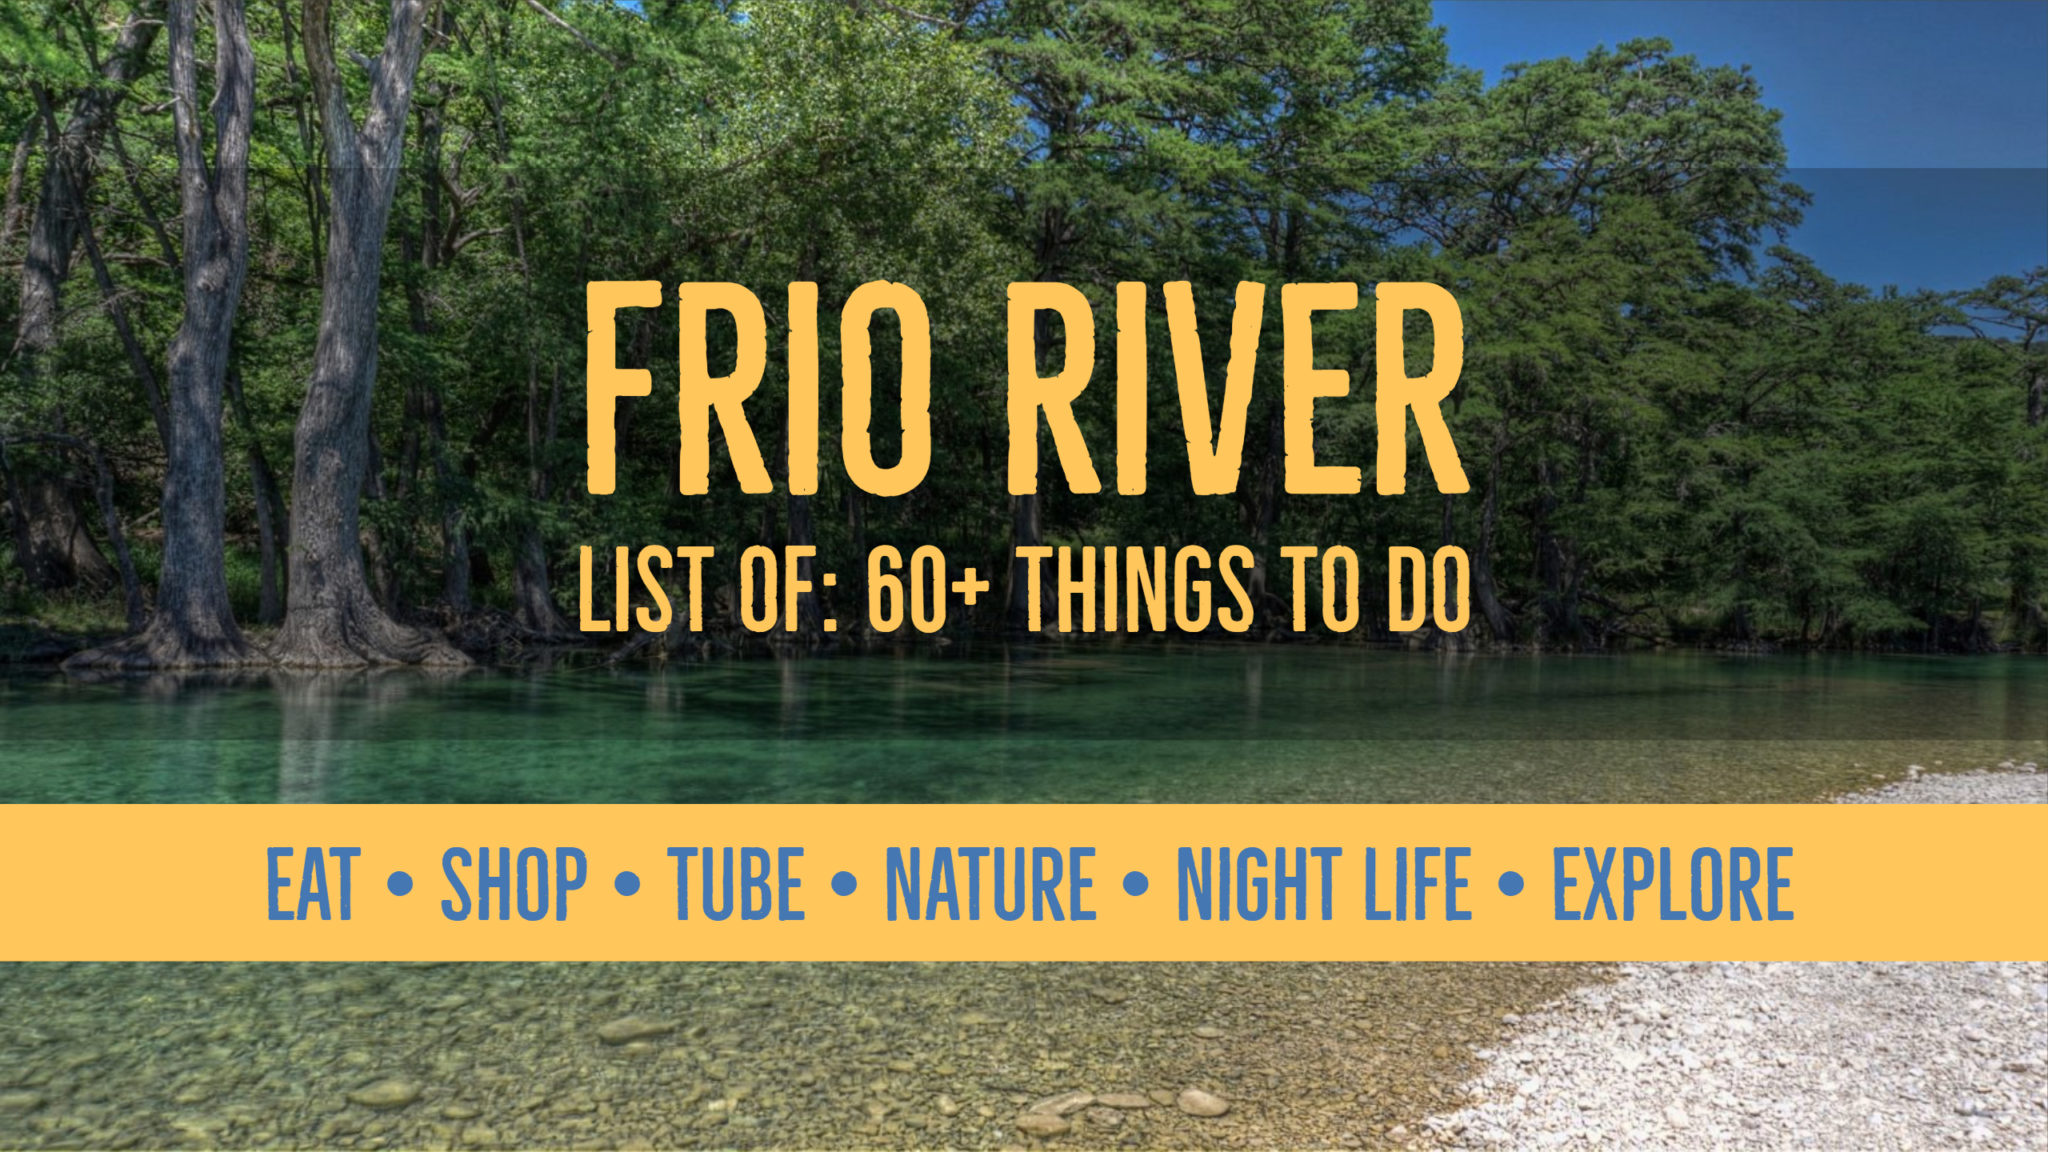 List of Things To Do at the Frio River   60+ Attractions